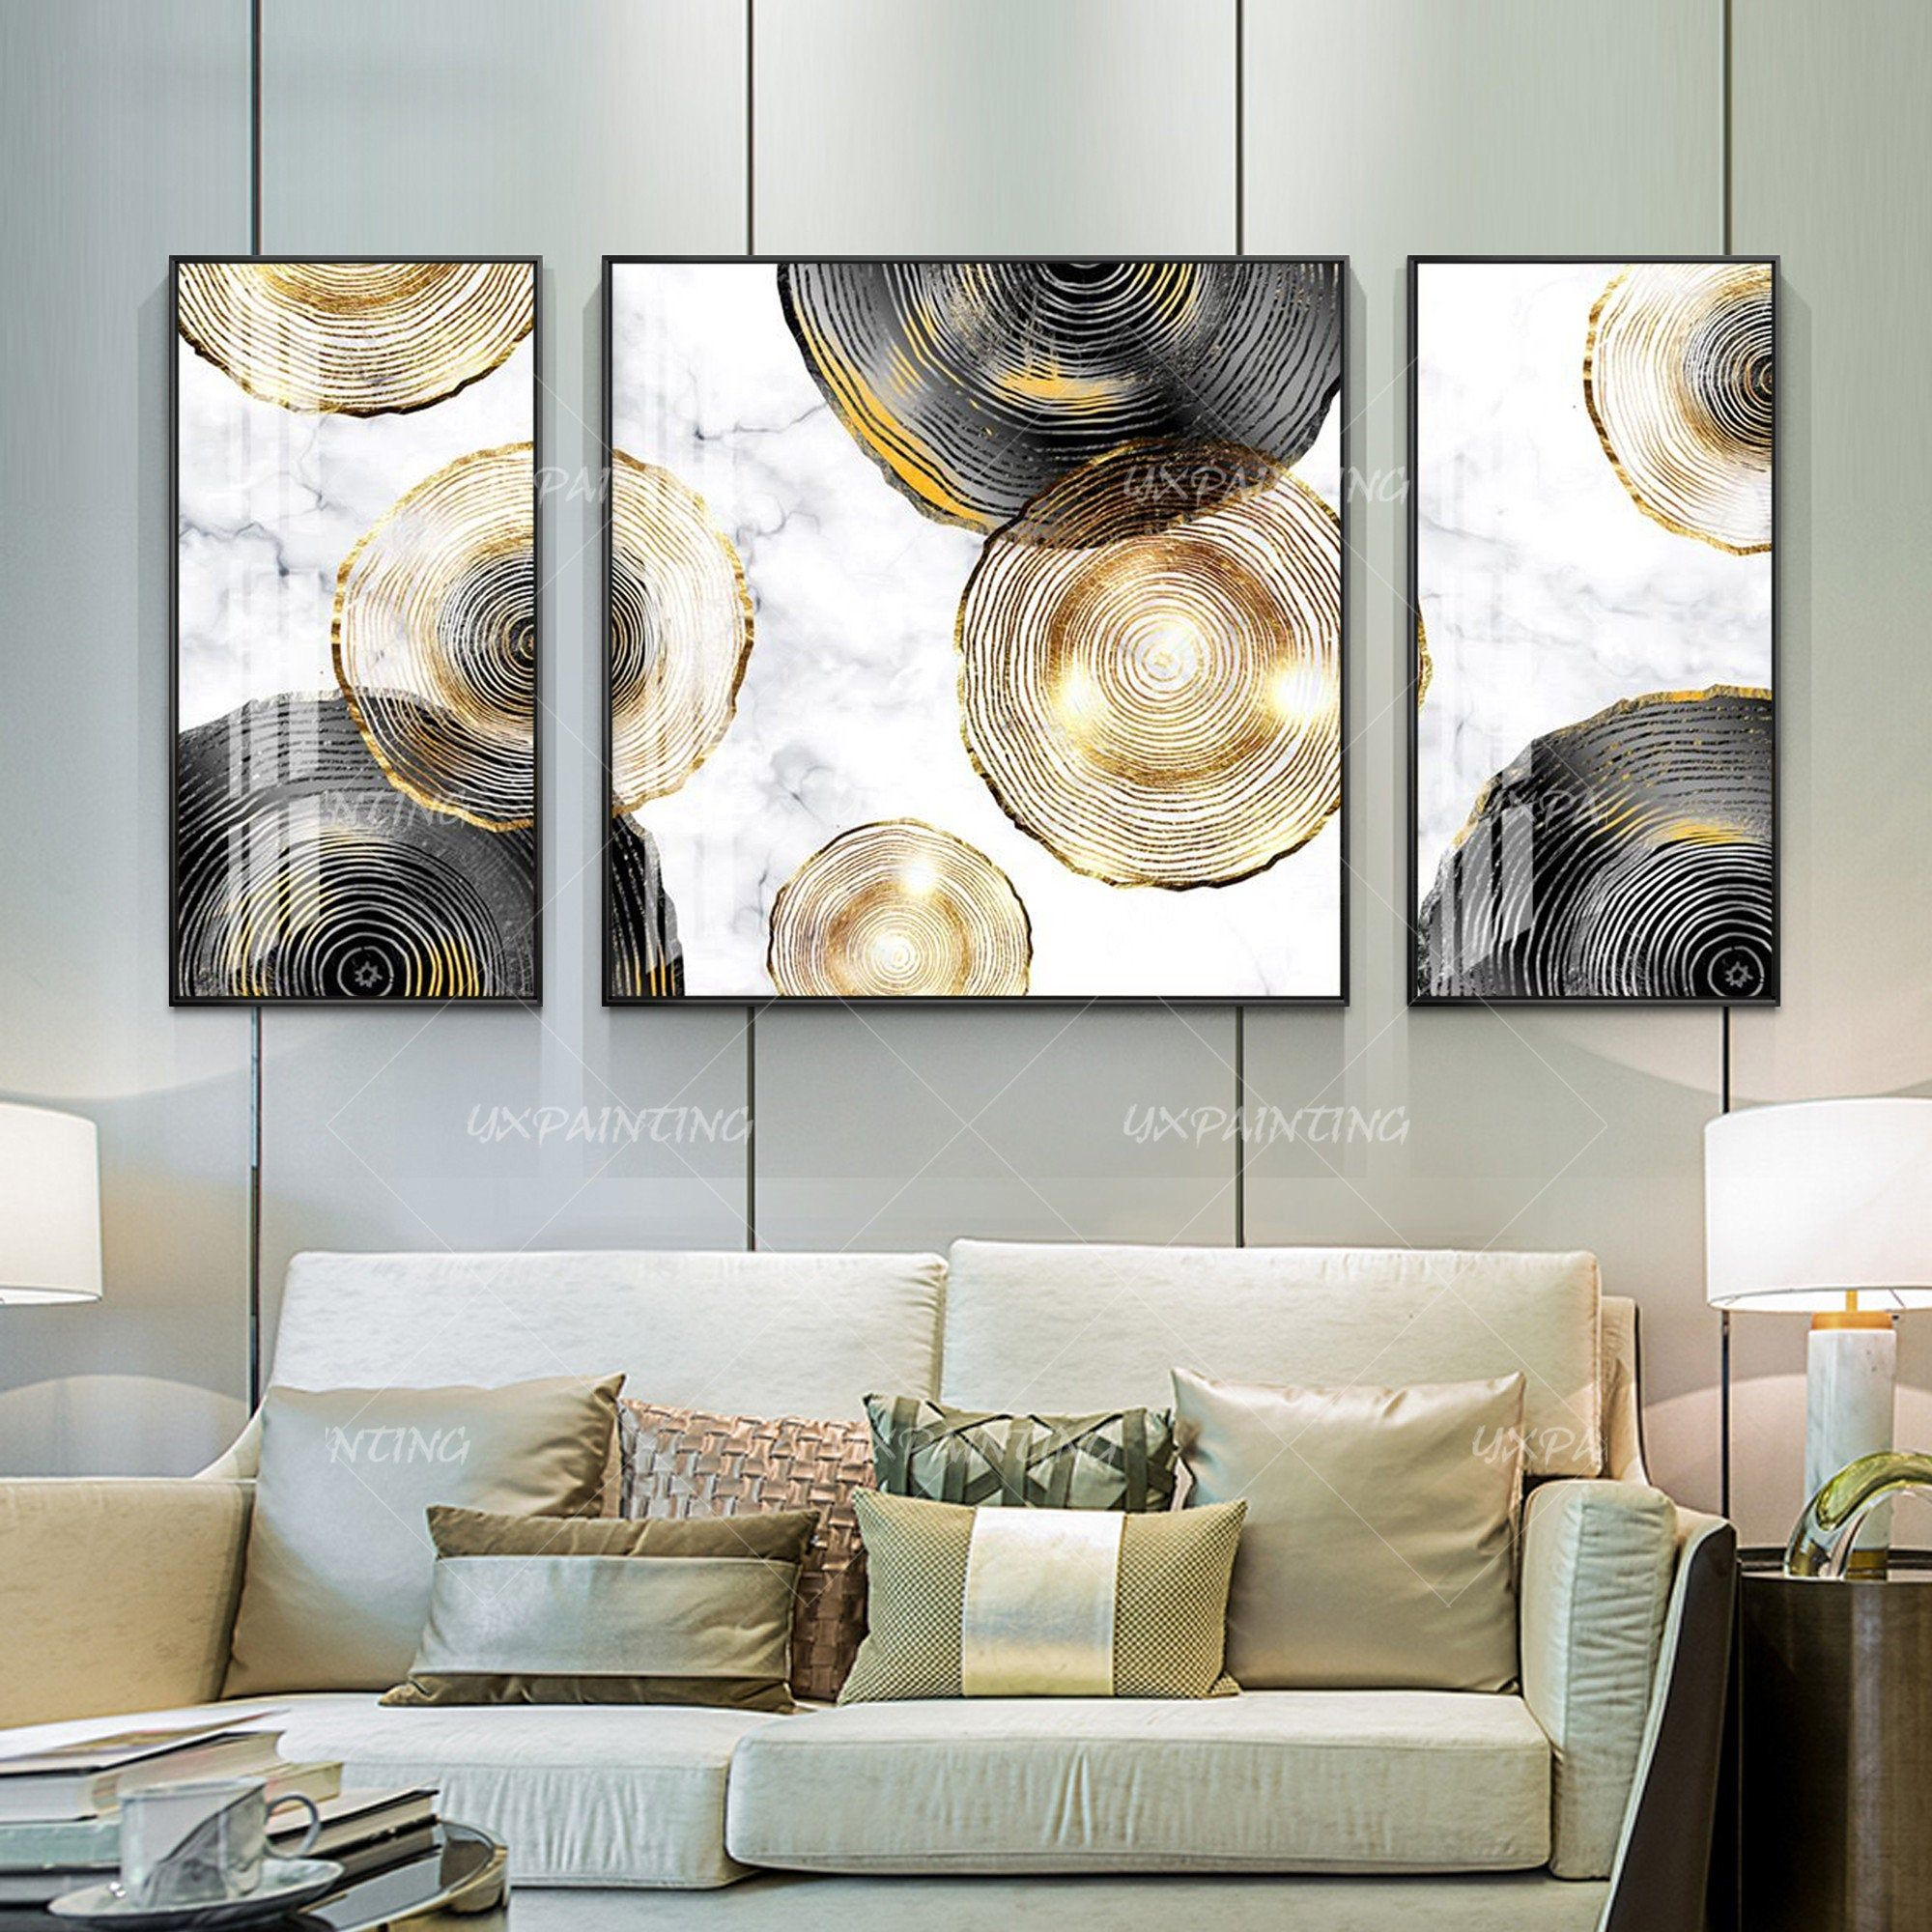 Gold Art Set Of 3 Wall Art Acrylic Paintings On Canvas Original Art Black Painting Wall Pictures Framed Wall Art Cuadros Abstractos Framed Wall Art Home Decor Wall Art Picture Frame Wall